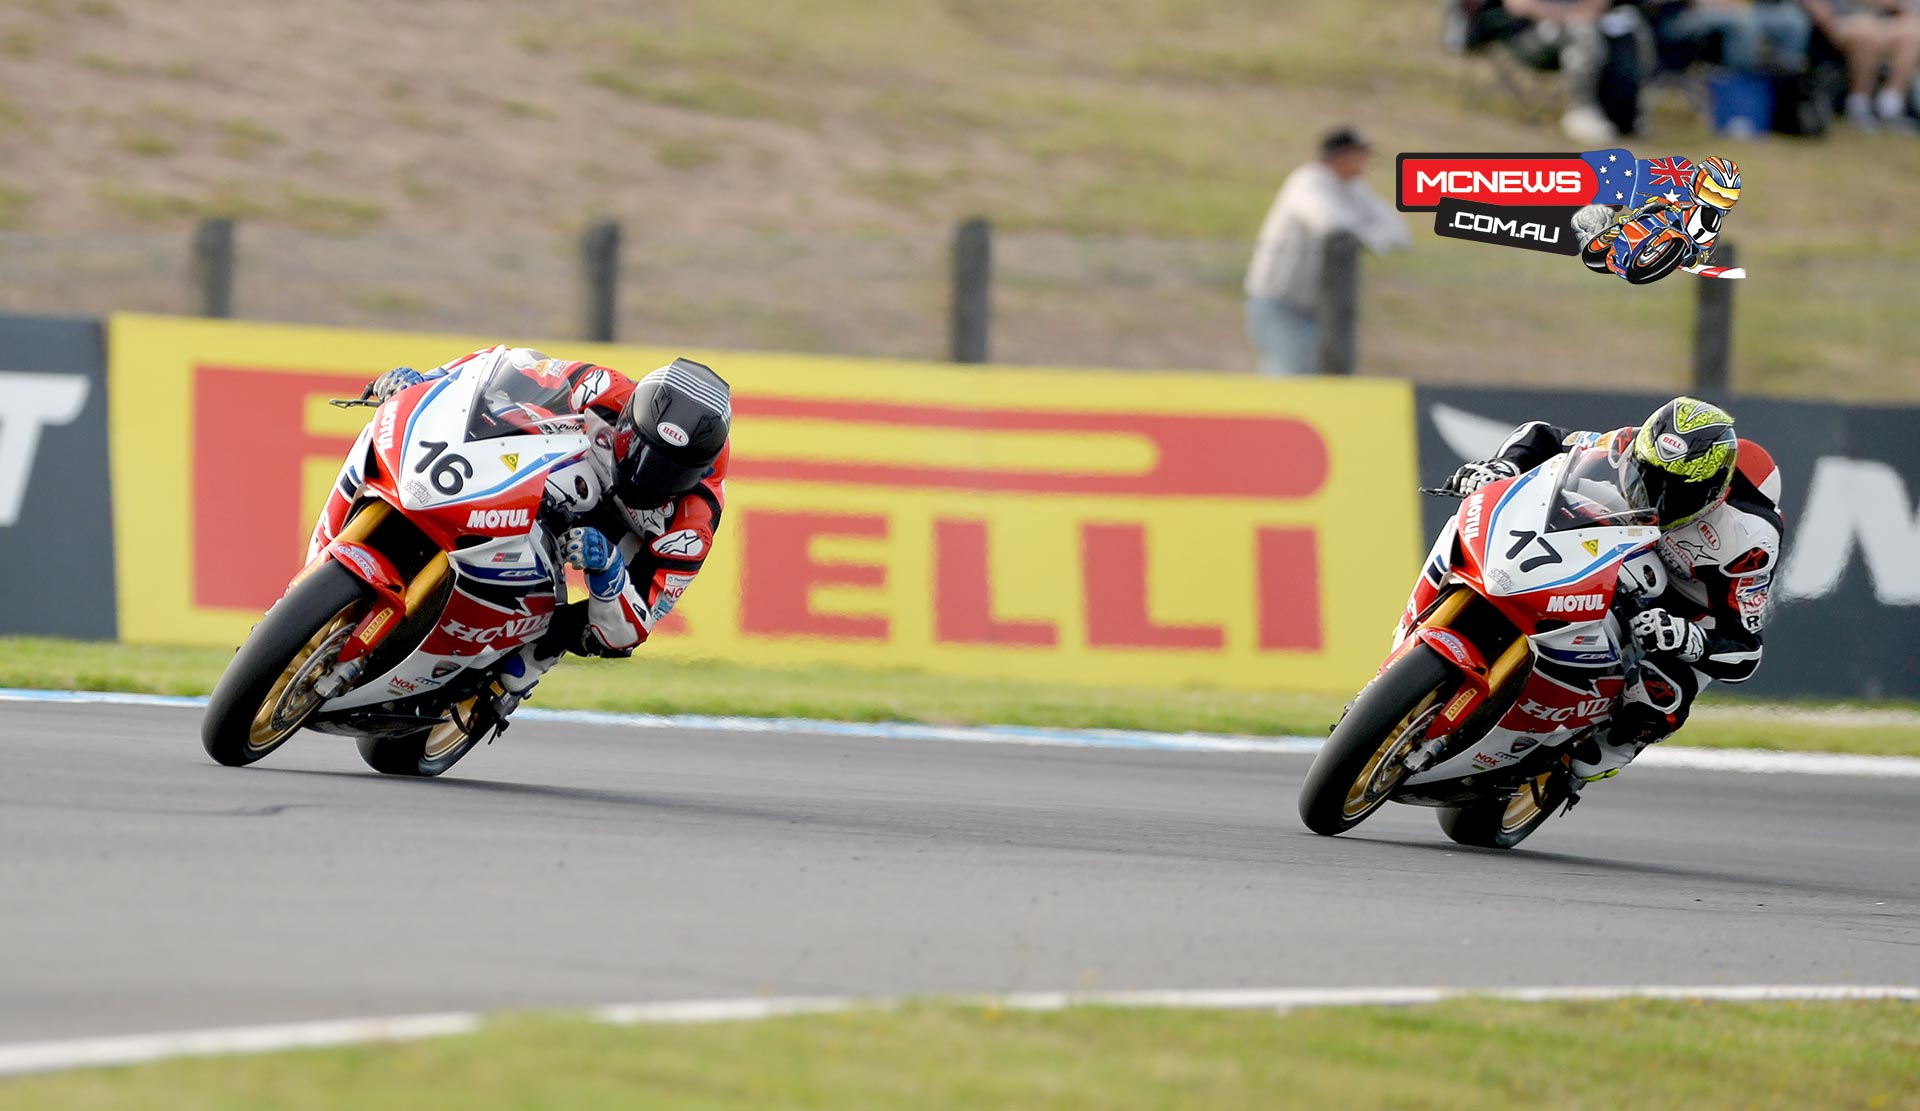 Josh Hook took the opening race win in ASBK season 2015 from Troy Herfoss by 0..099 of a second at Phillip Island